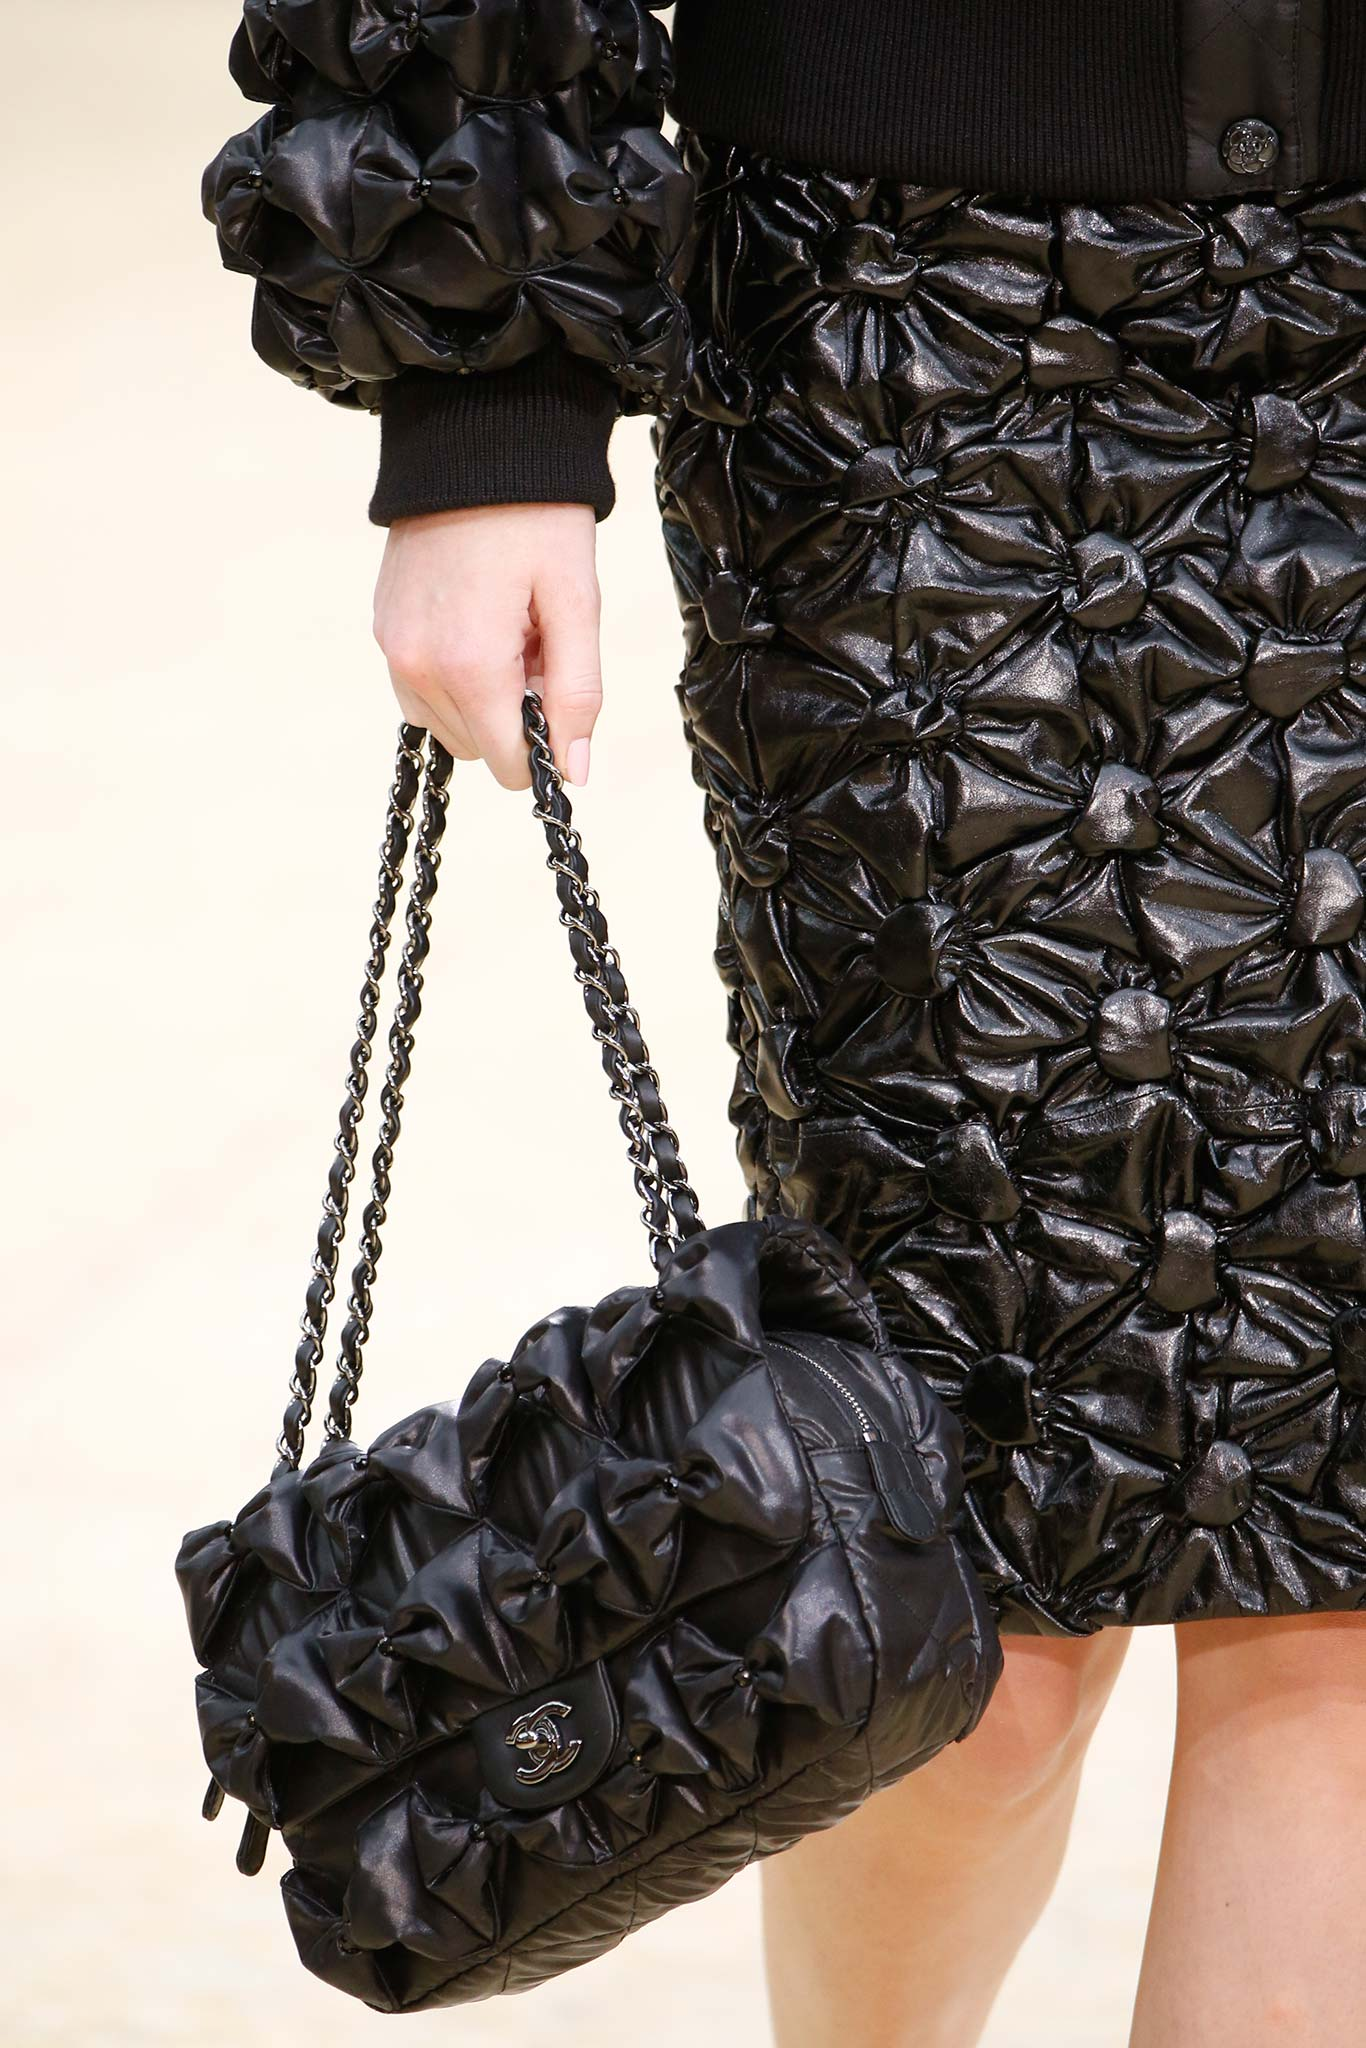 Chanel Fall Winter 2015 Runway Bag Collection Featuring